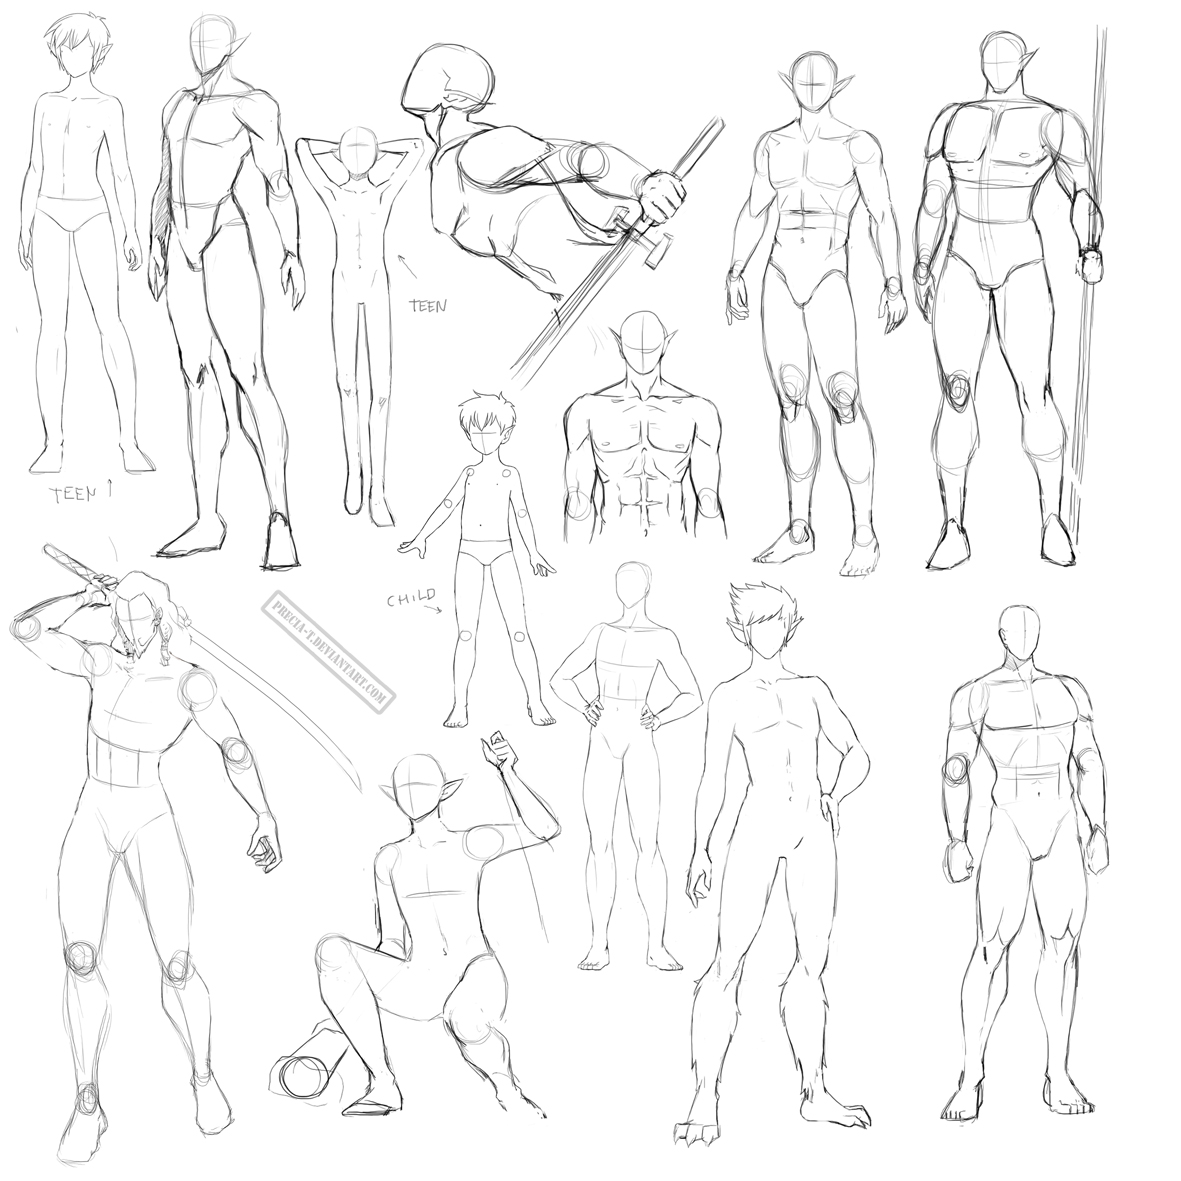 Basic Figure Drawing Tutorial at GetDrawings.com | Free for personal ...